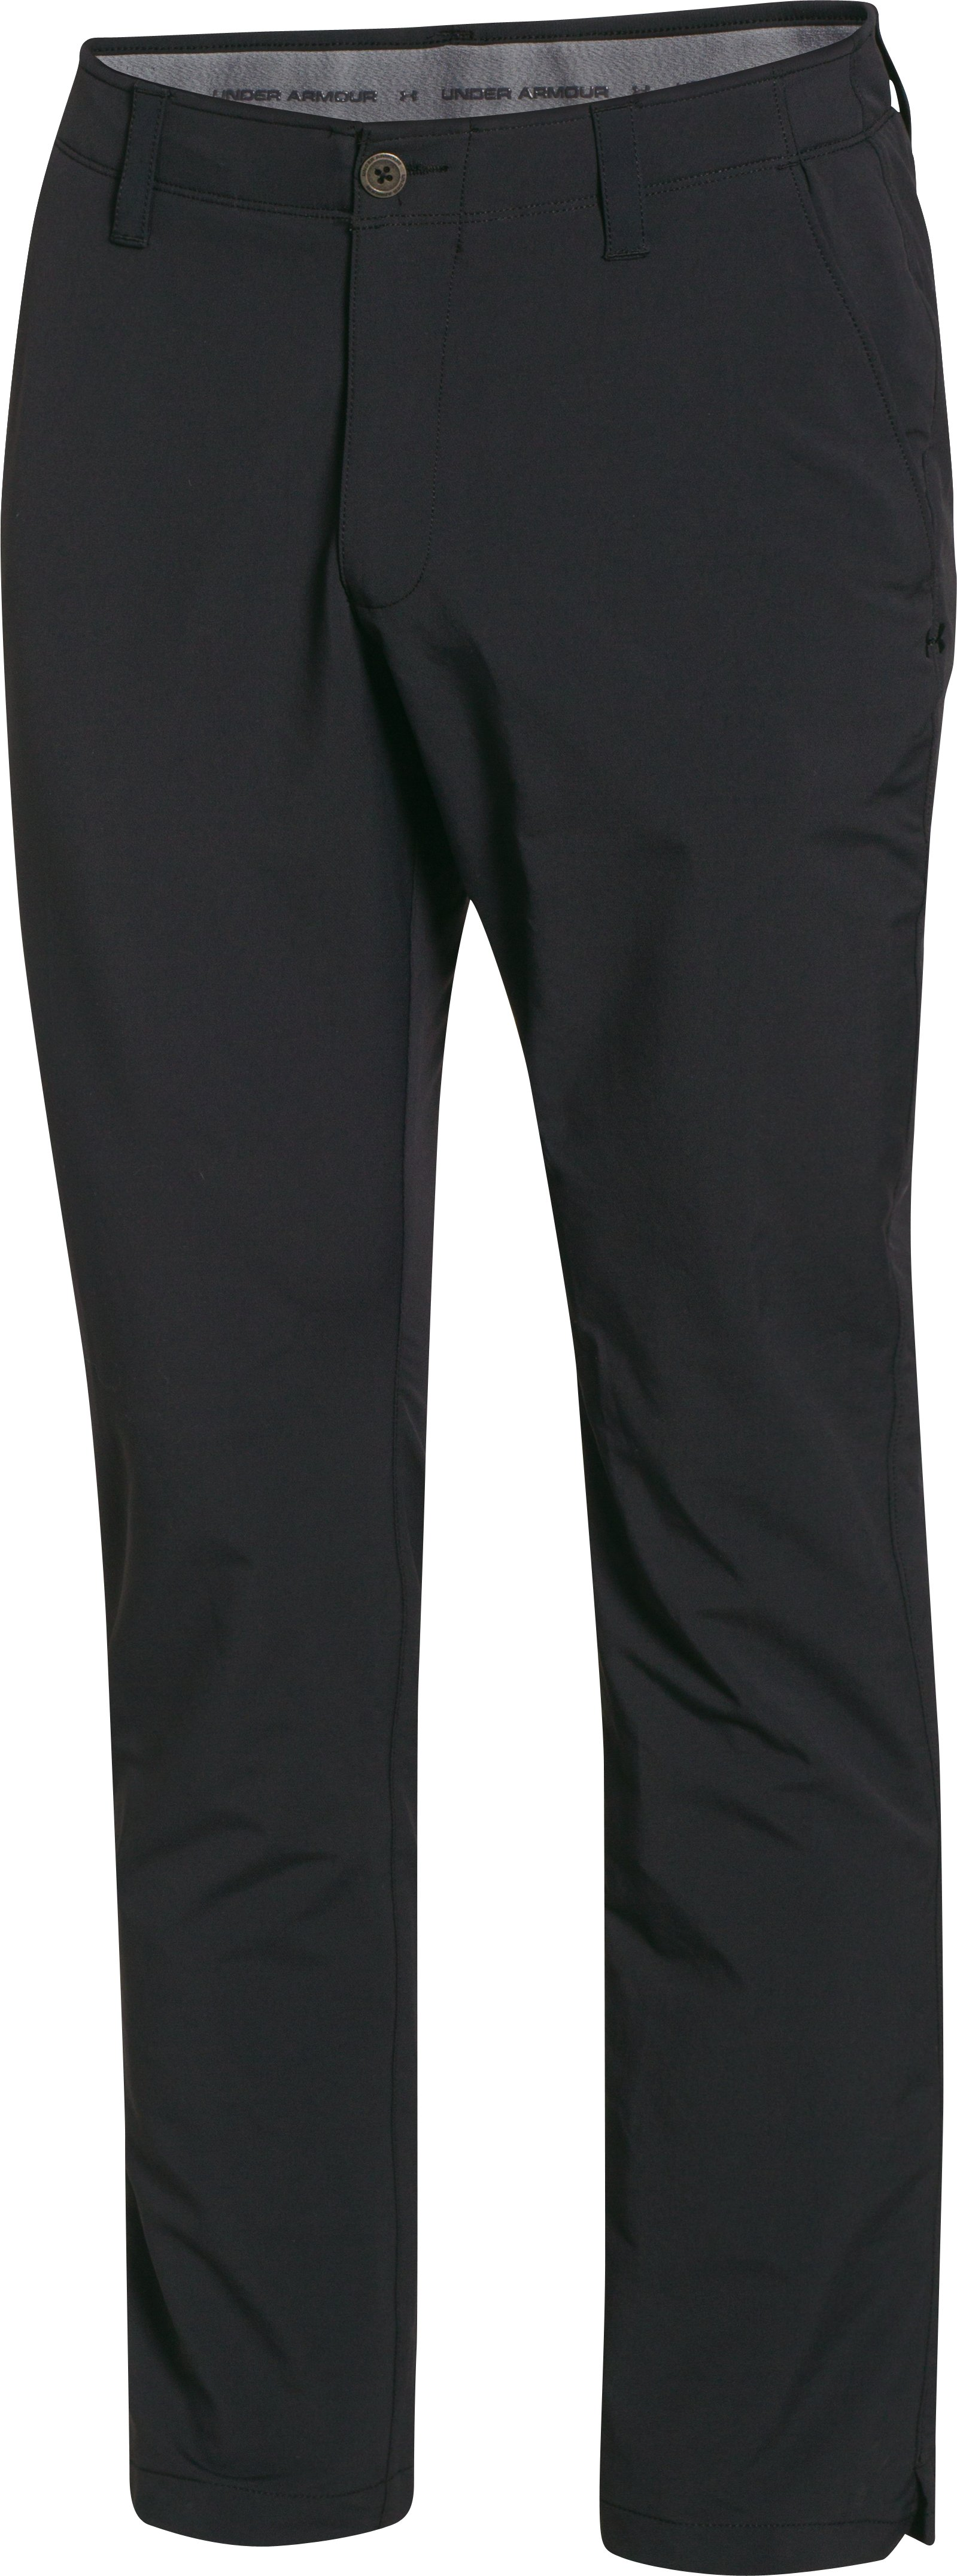 Men's UA Match Play Golf Pants – Tapered Leg, Black